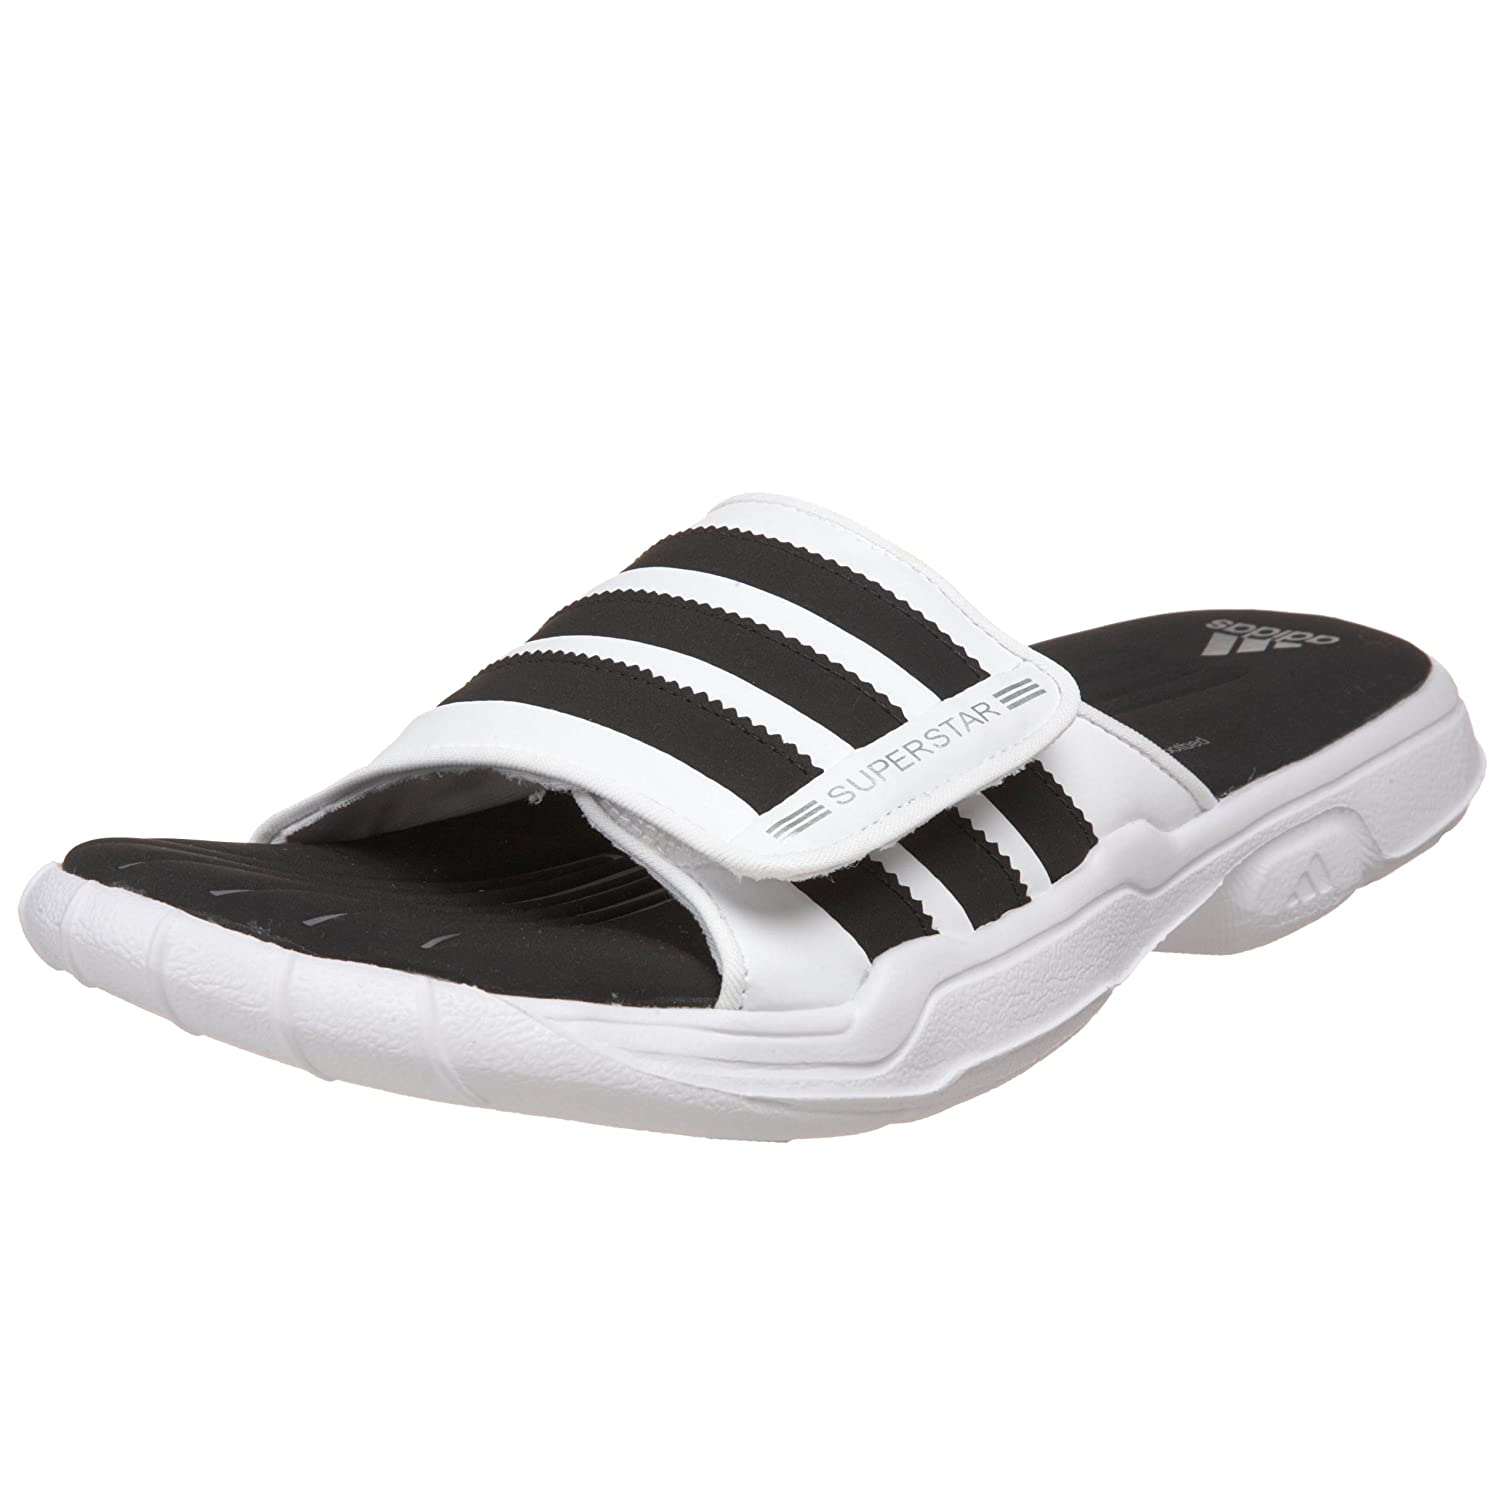 ... amazon adidas mens ss 2g slide plus sandal white black metallic silver  5 m sport sandals